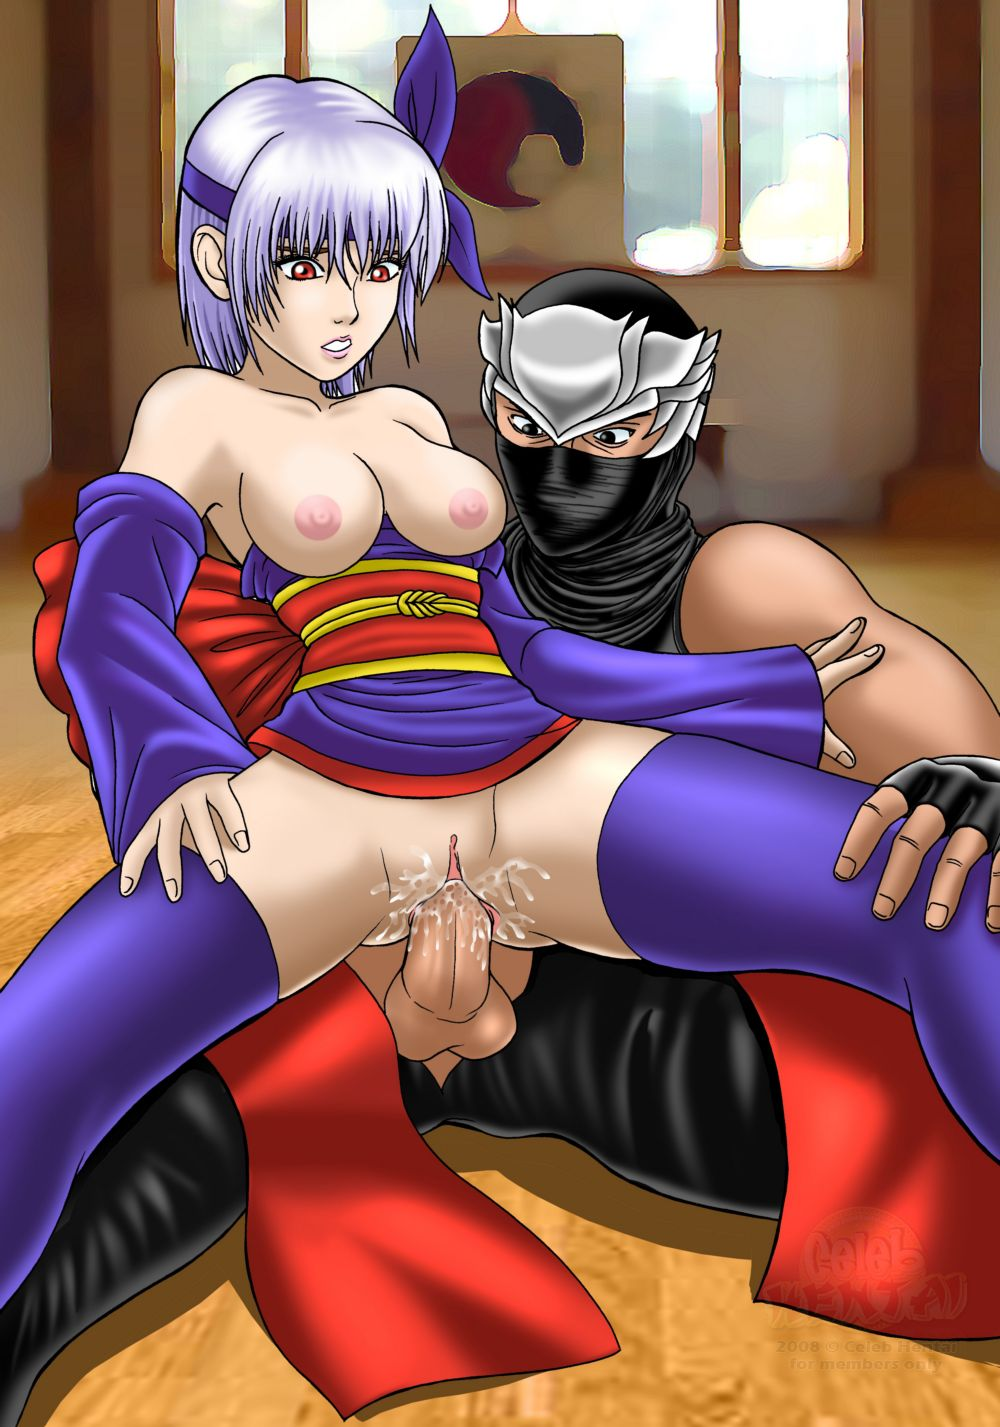 Hot ninja girl hentai pictures pron toons